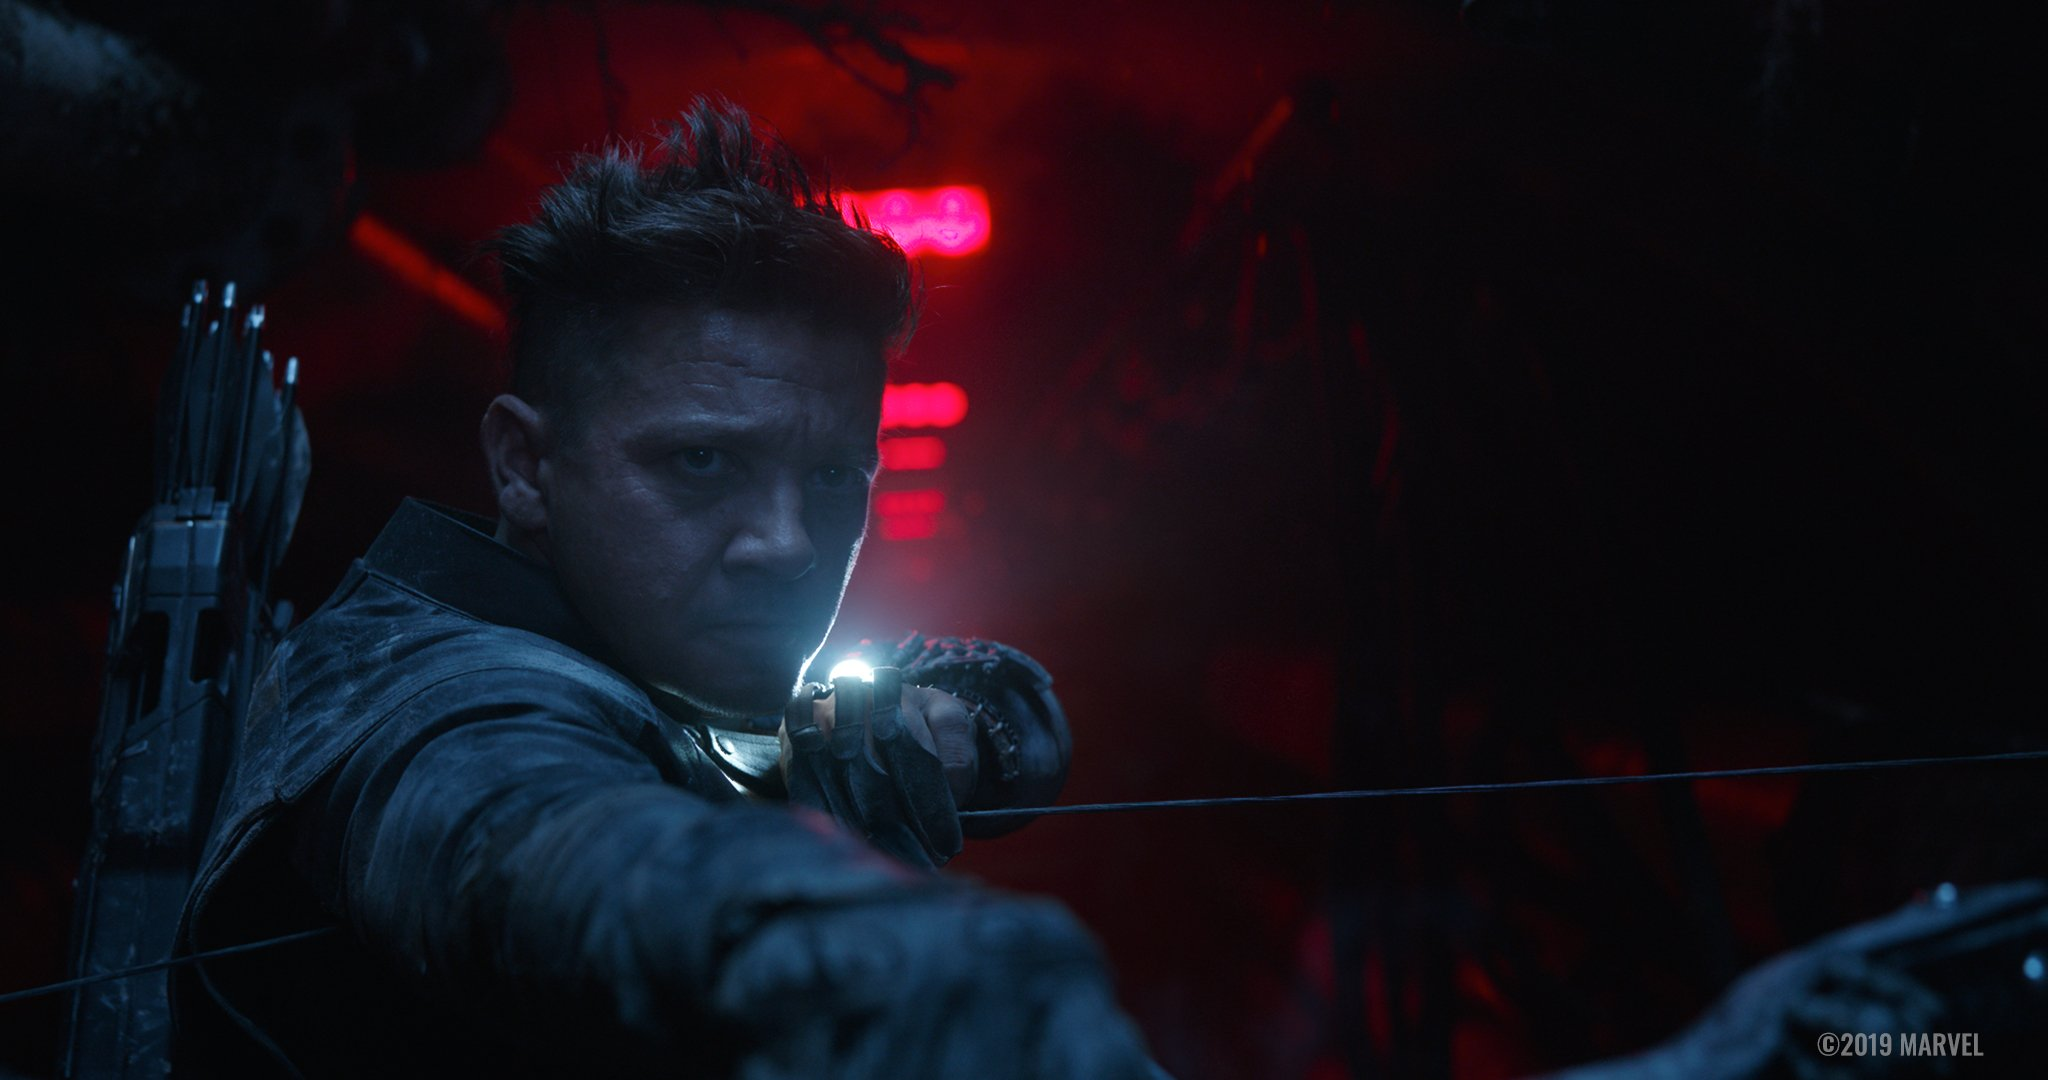 Photo du film Avengers: Endgame avec Hawkeye en train de tendre son arc